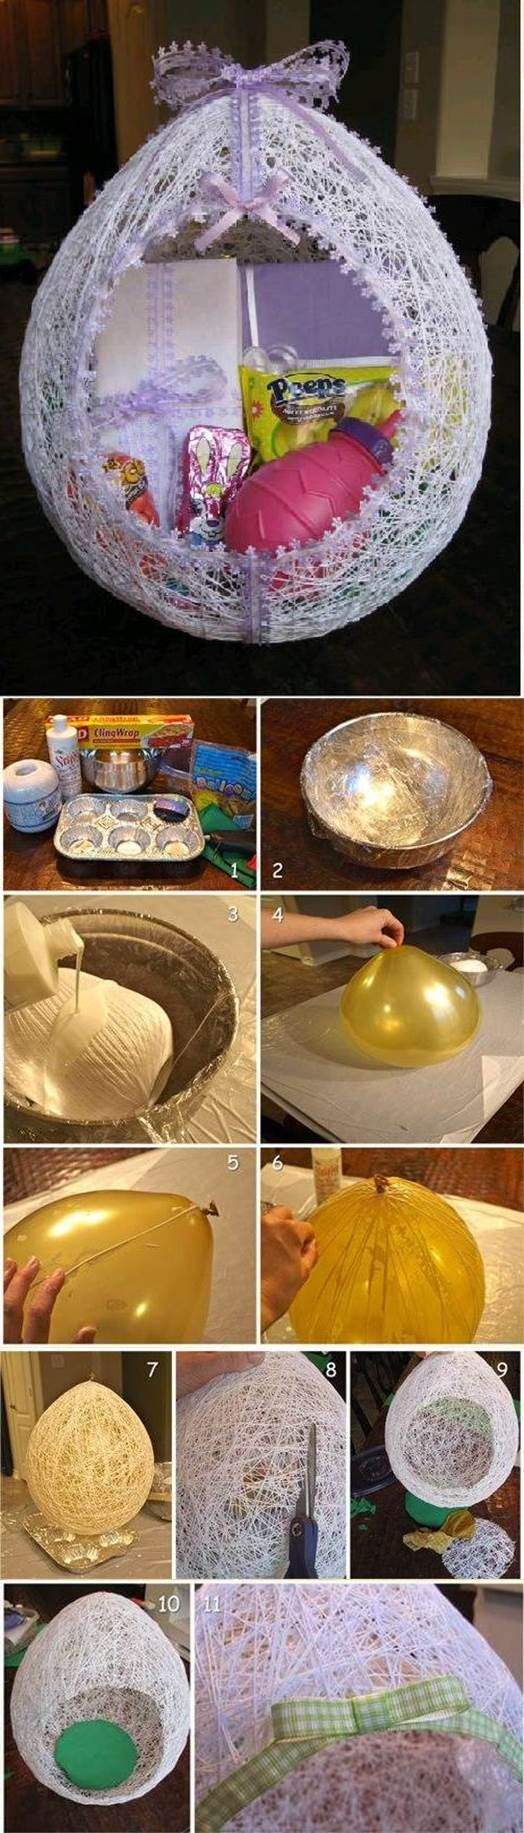 DIY Egg Shaped Easter String Basket. Am thinking would be cool for Christmas too.